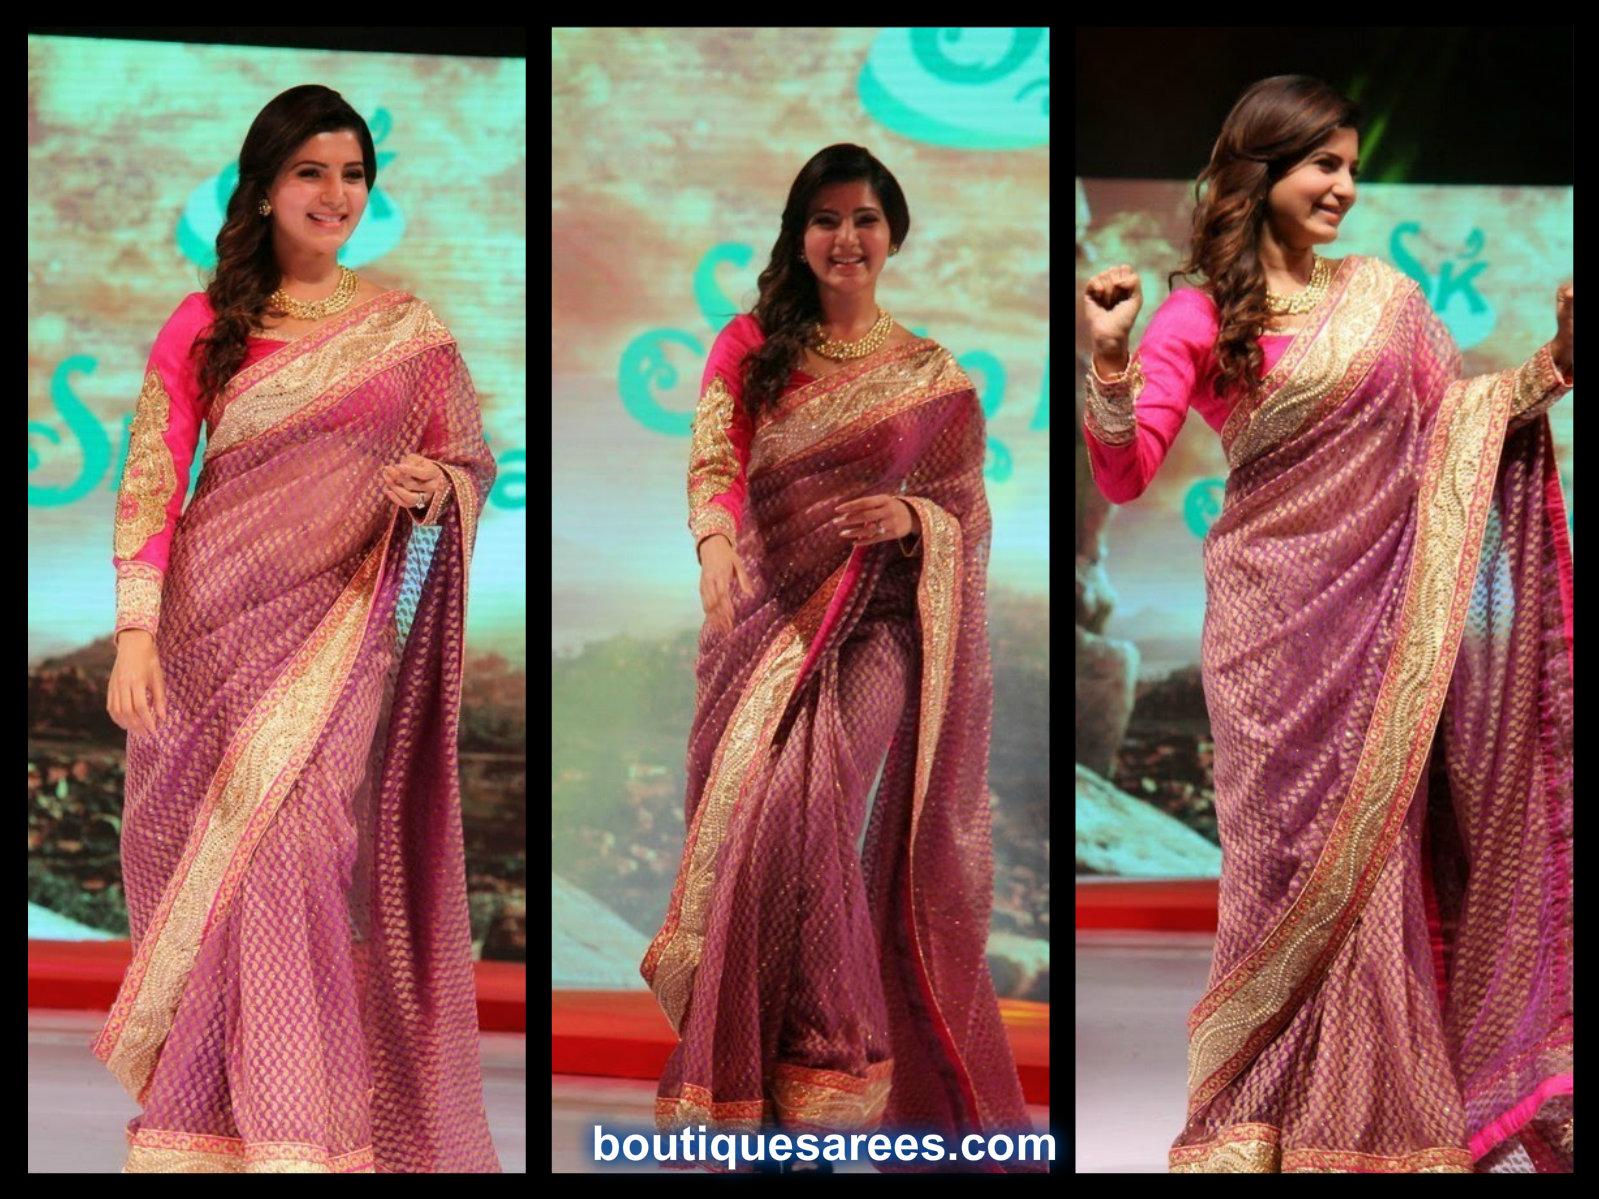 Samantha in Shilpakala Saree